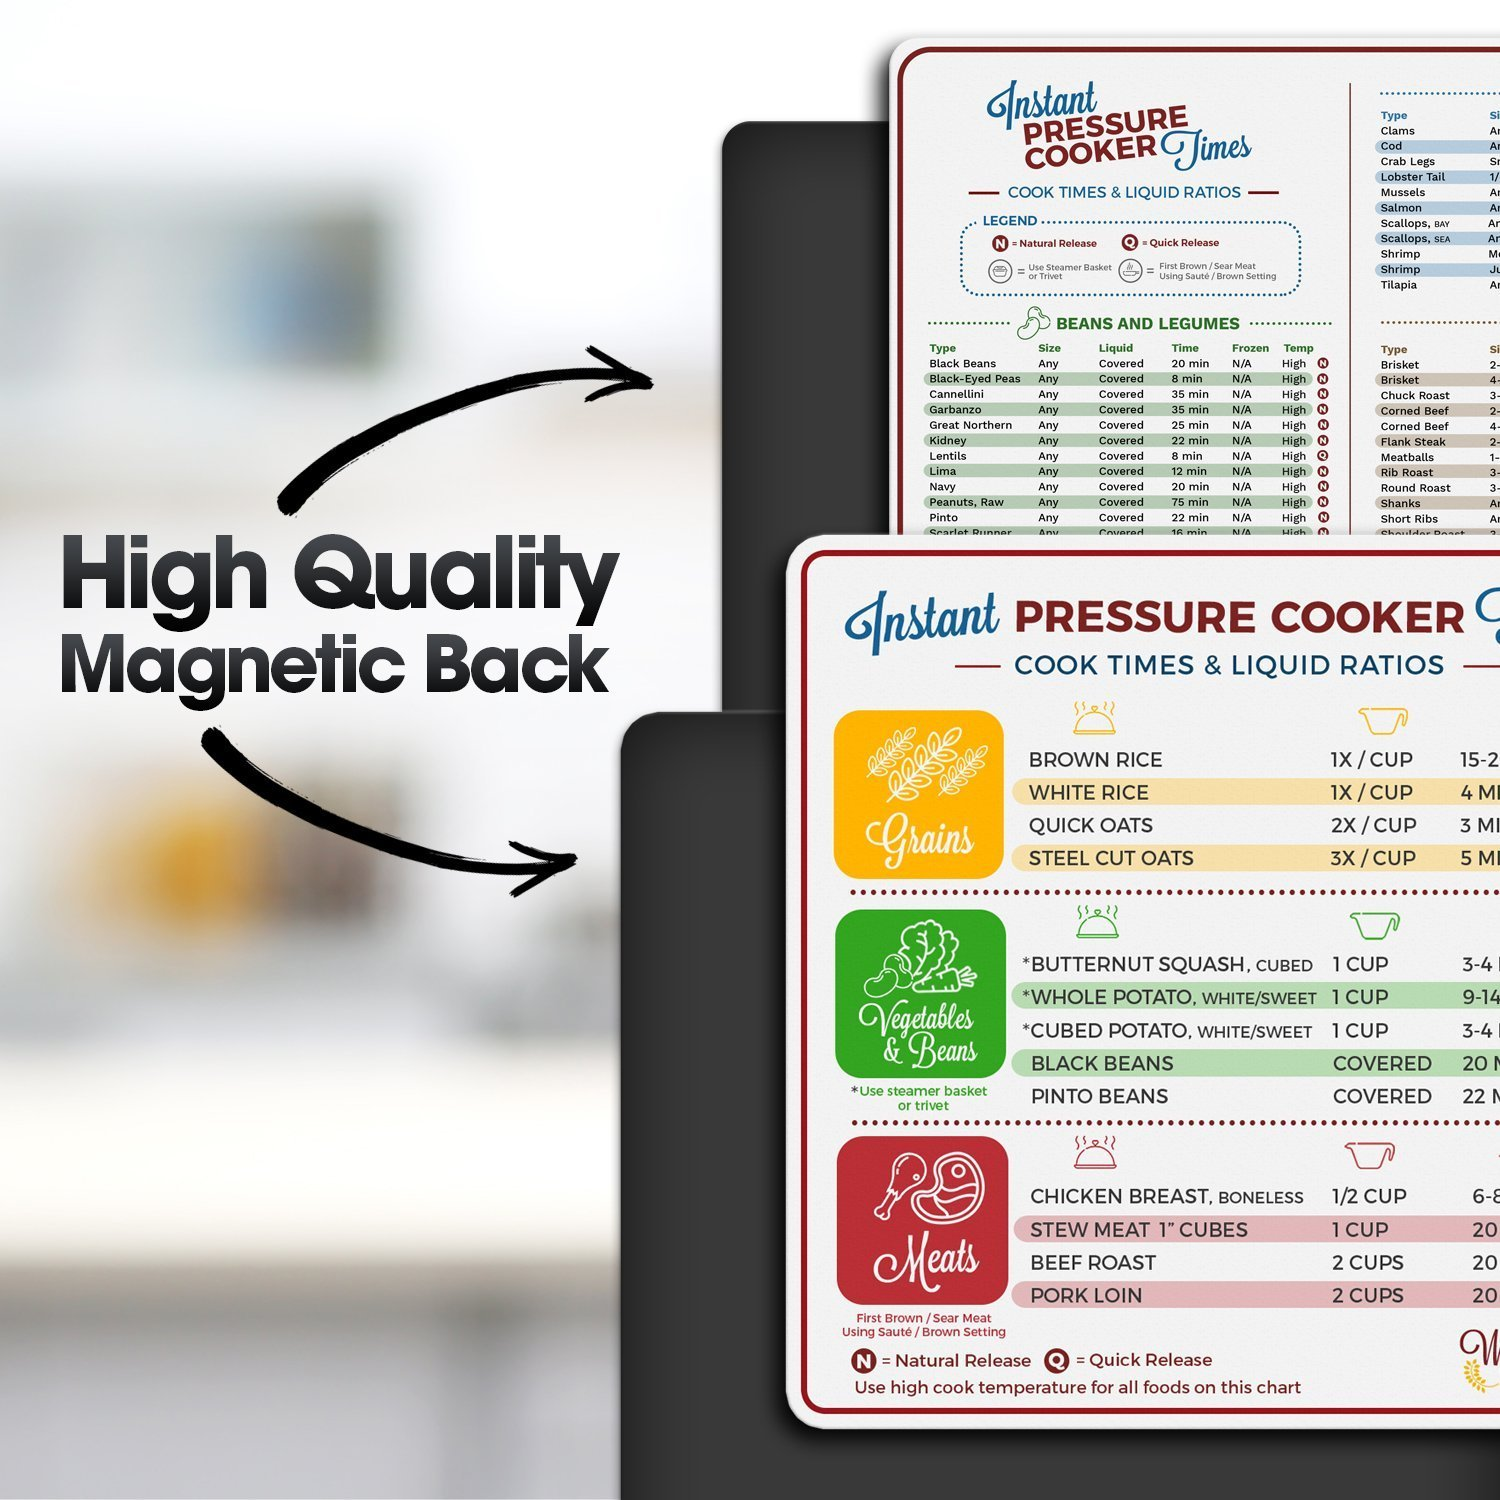 Instant Pot Electric Pressure Cooker Cook Times Quick Reference Guide | Instapot Accessories Magnetic Cheat Sheet Magnet Set | Insta Pot Sticker and Decal Alternative | Made in the USA by Willa Flare (Image #5)